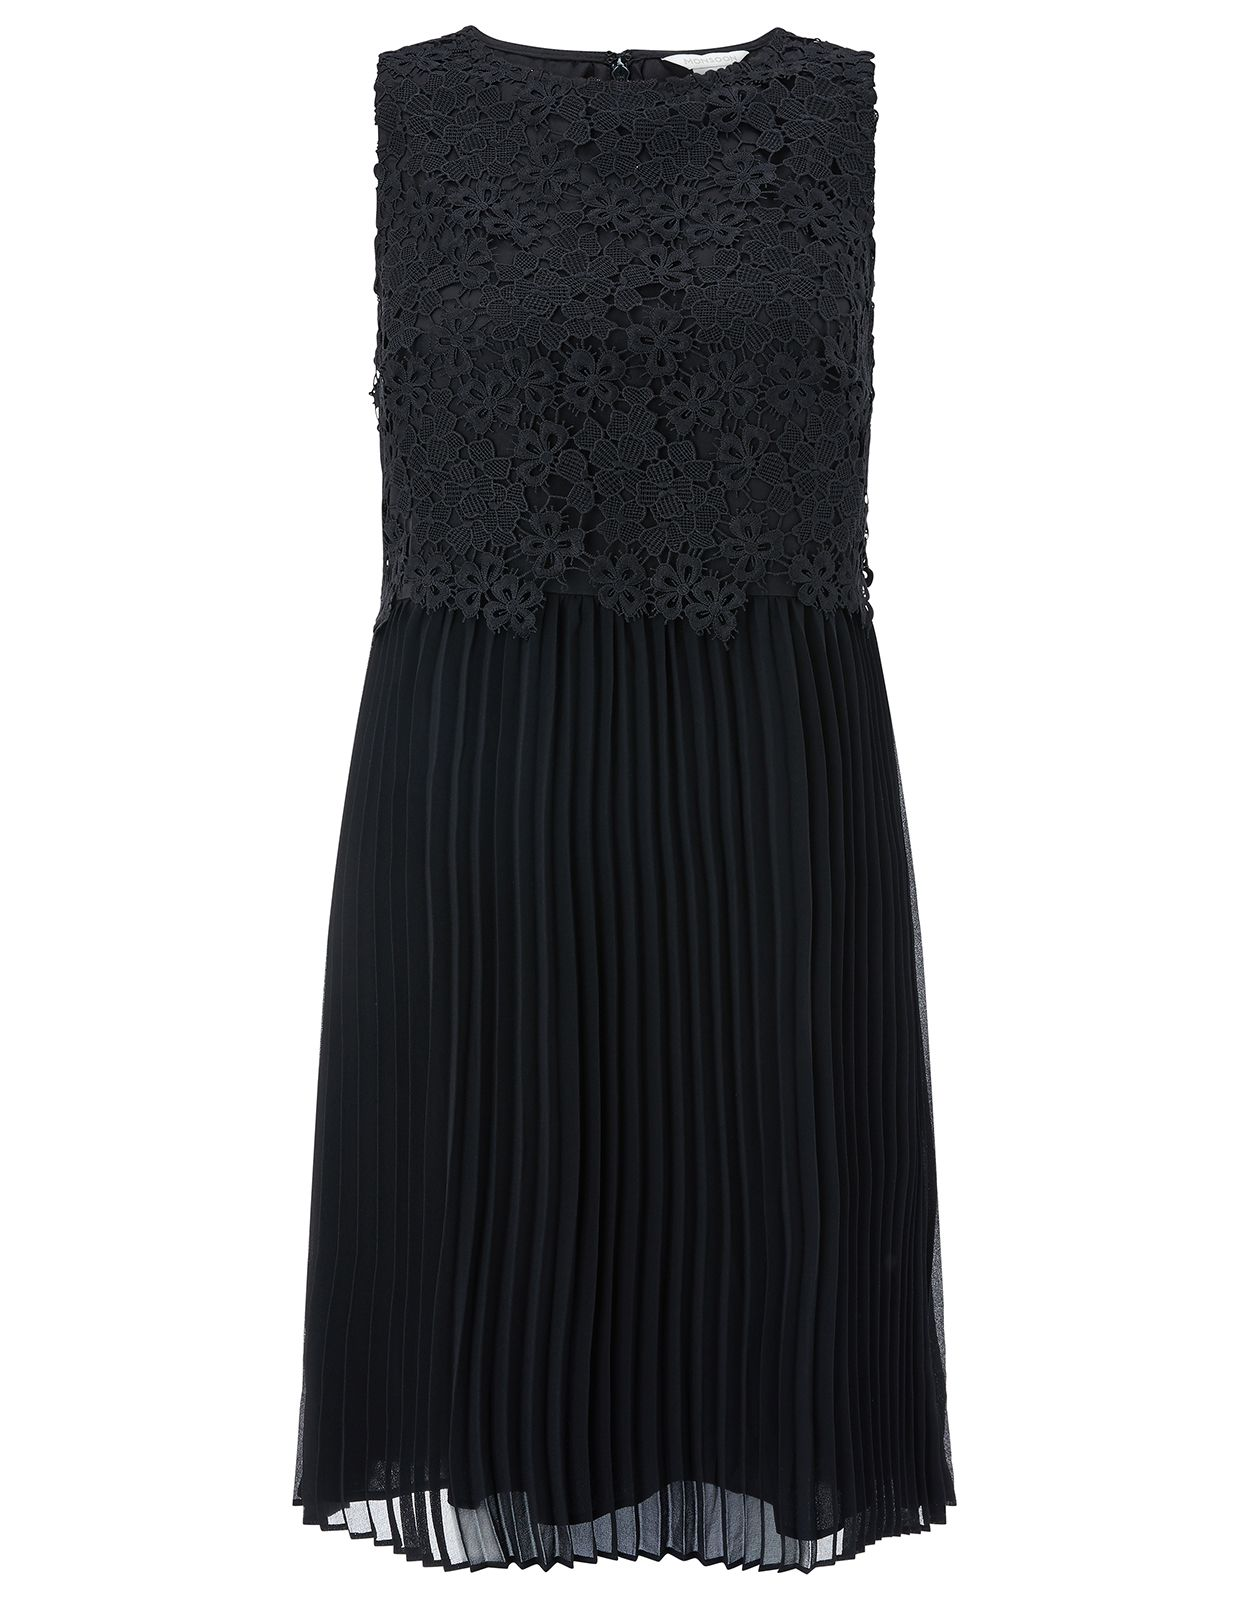 Monsoon Piper Pleat Lace Dress, Black